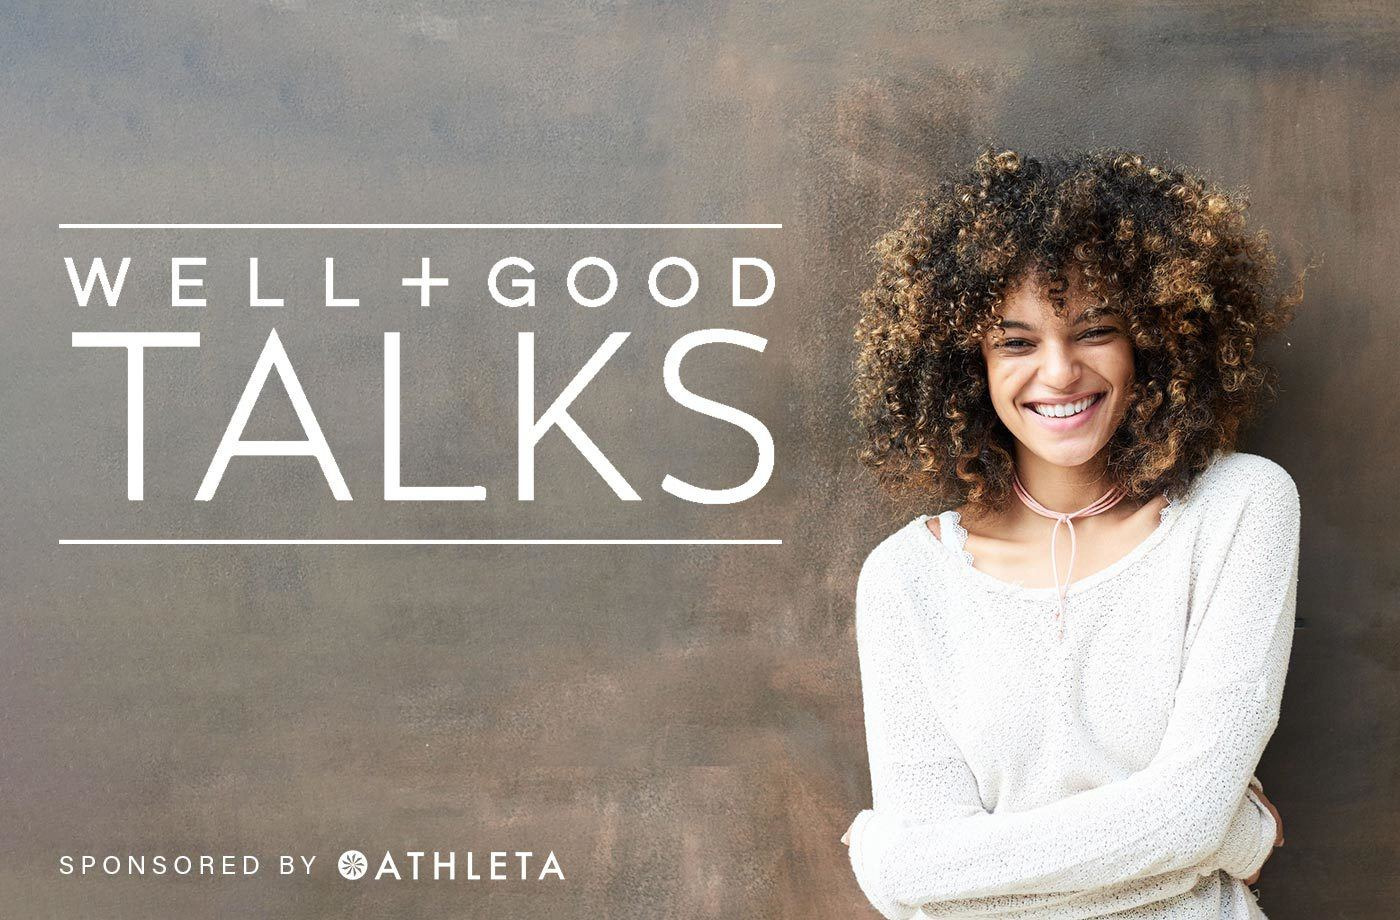 Thumbnail for Well+Good TALKS: One-Stop Wellness Is Putting Your Healthy Life Under One Roof